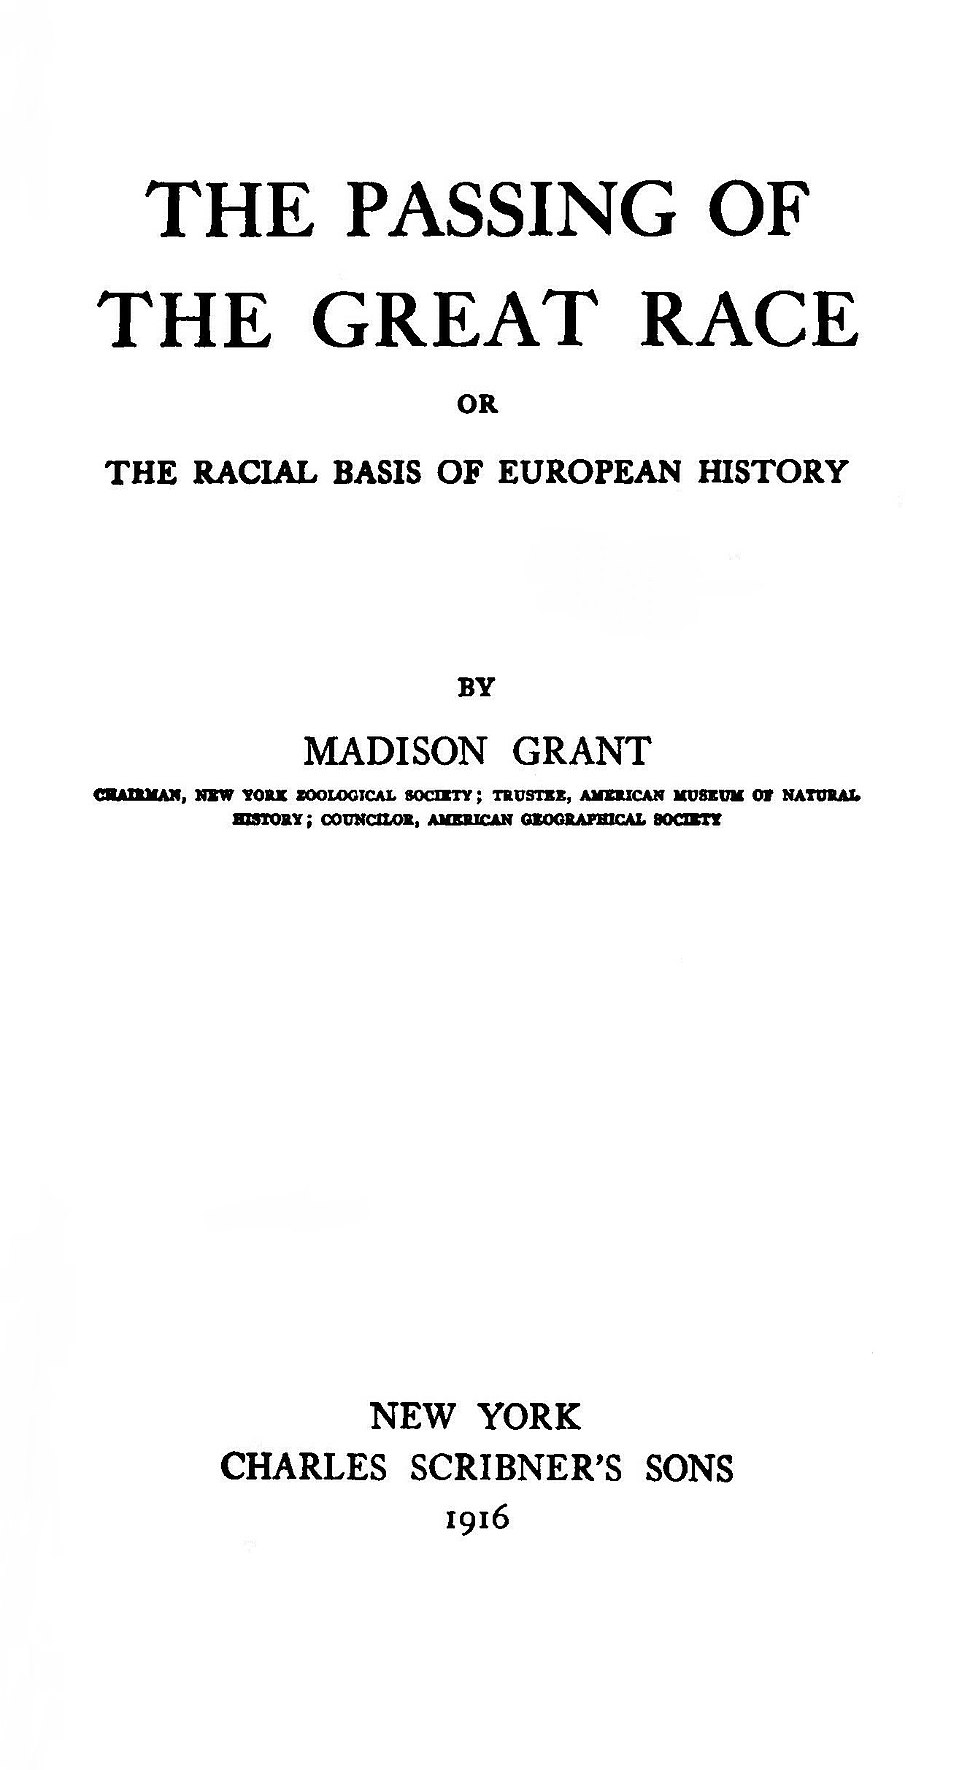 Title Page of the The Passing of the Great Race